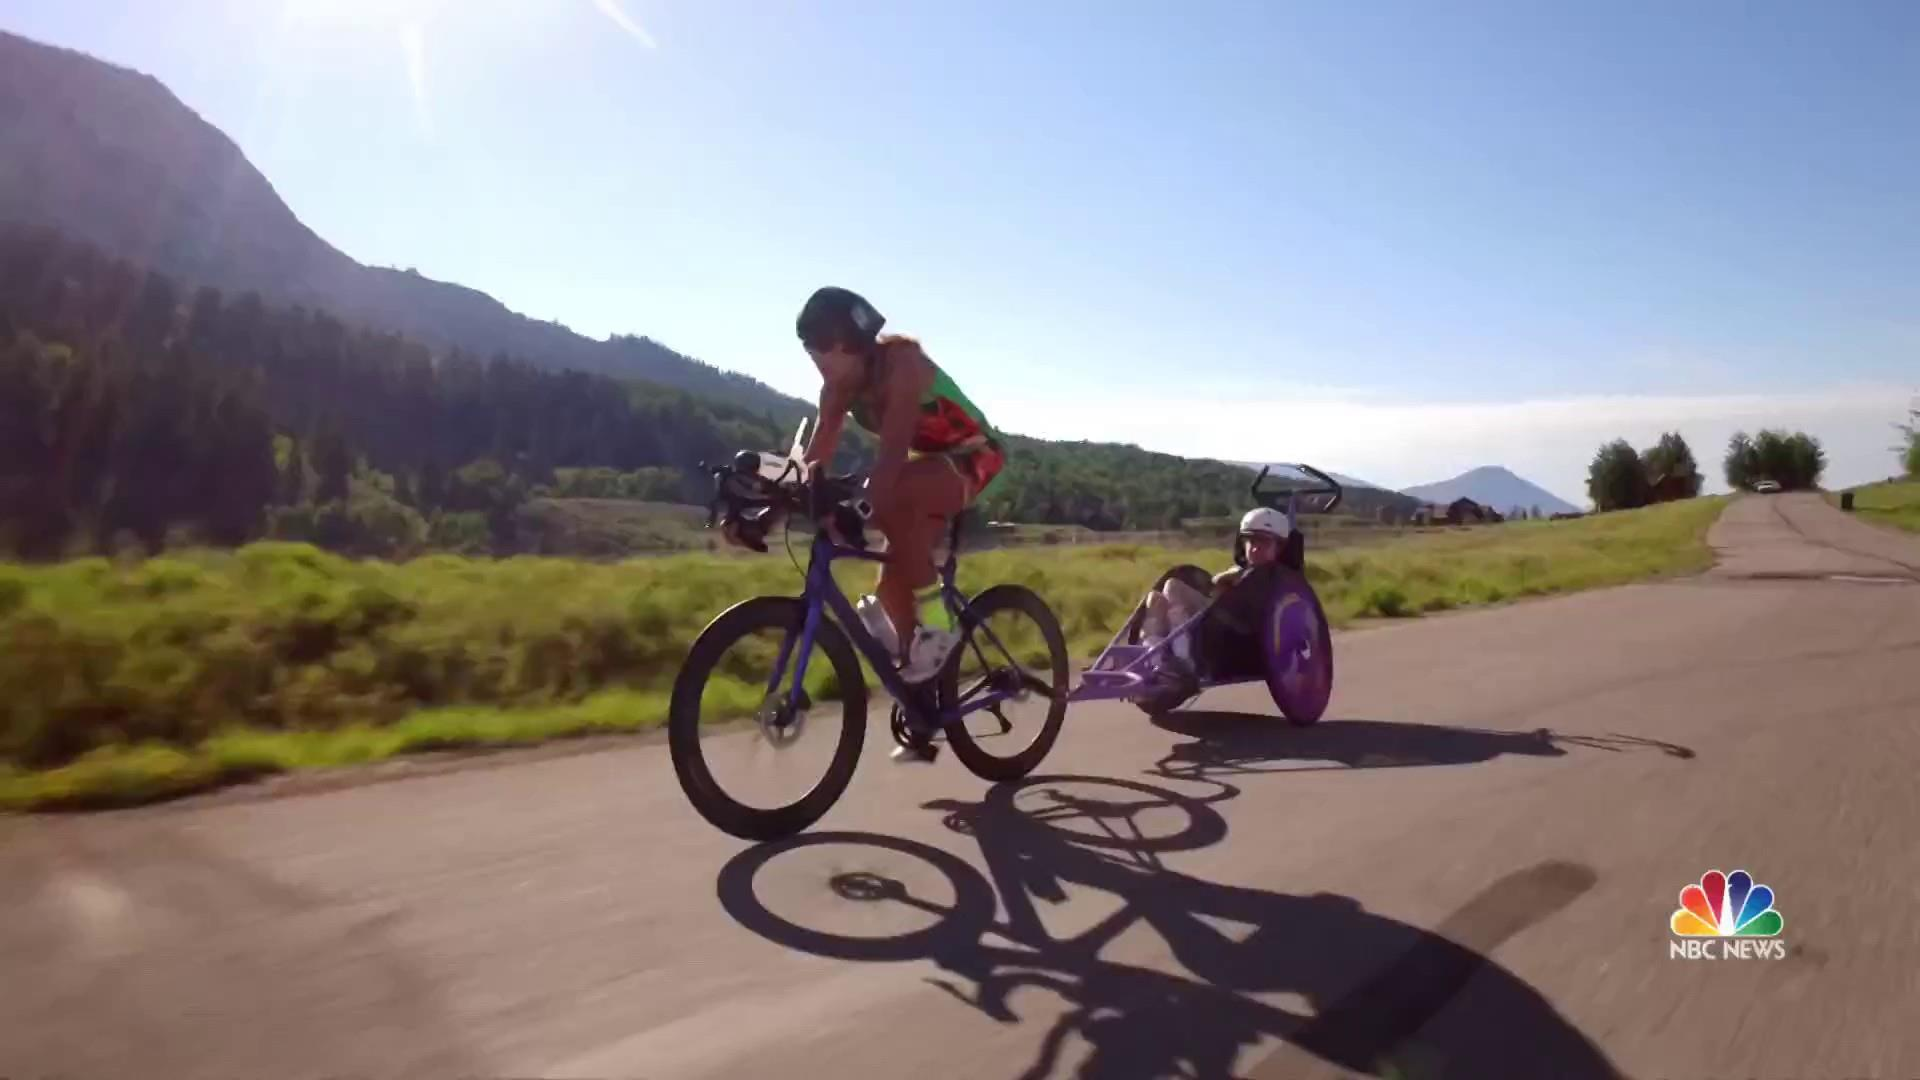 Mother-daughter team makes history at Ironman competition